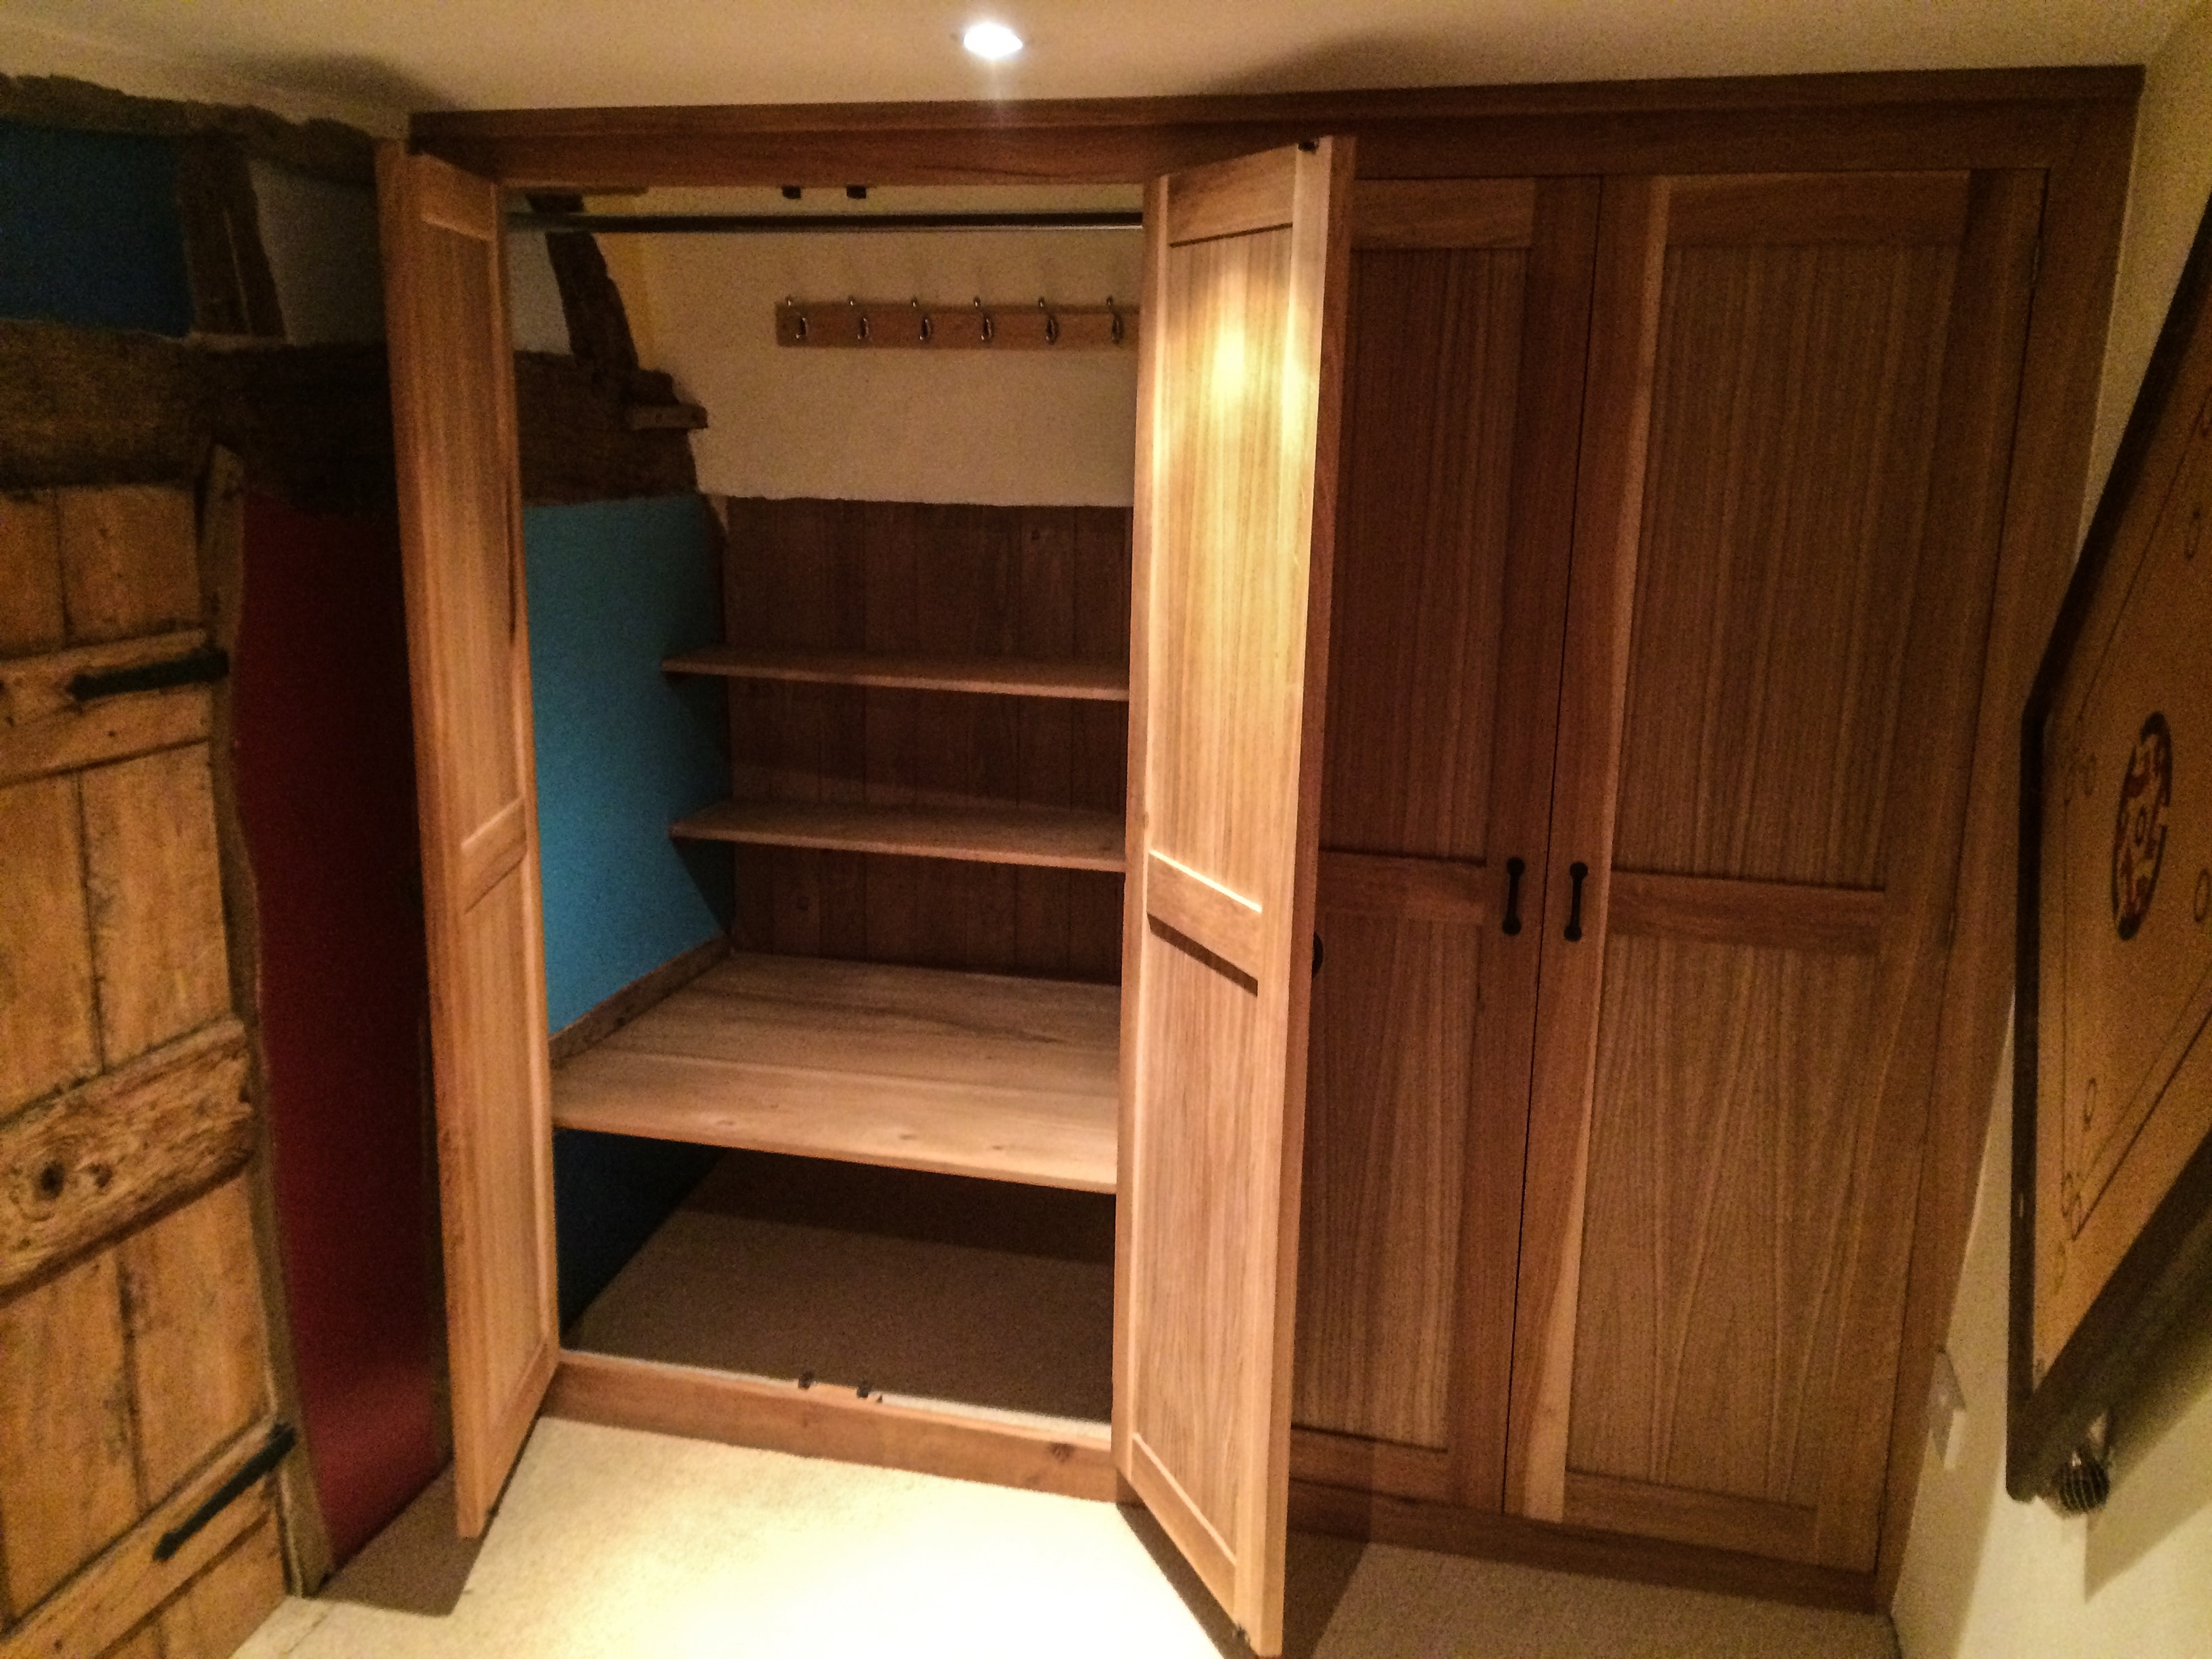 Best 25 Solid Oak Wardrobe Ideas On Pinterest With Regard To Solid Wood Built In Wardrobes (View 3 of 15)